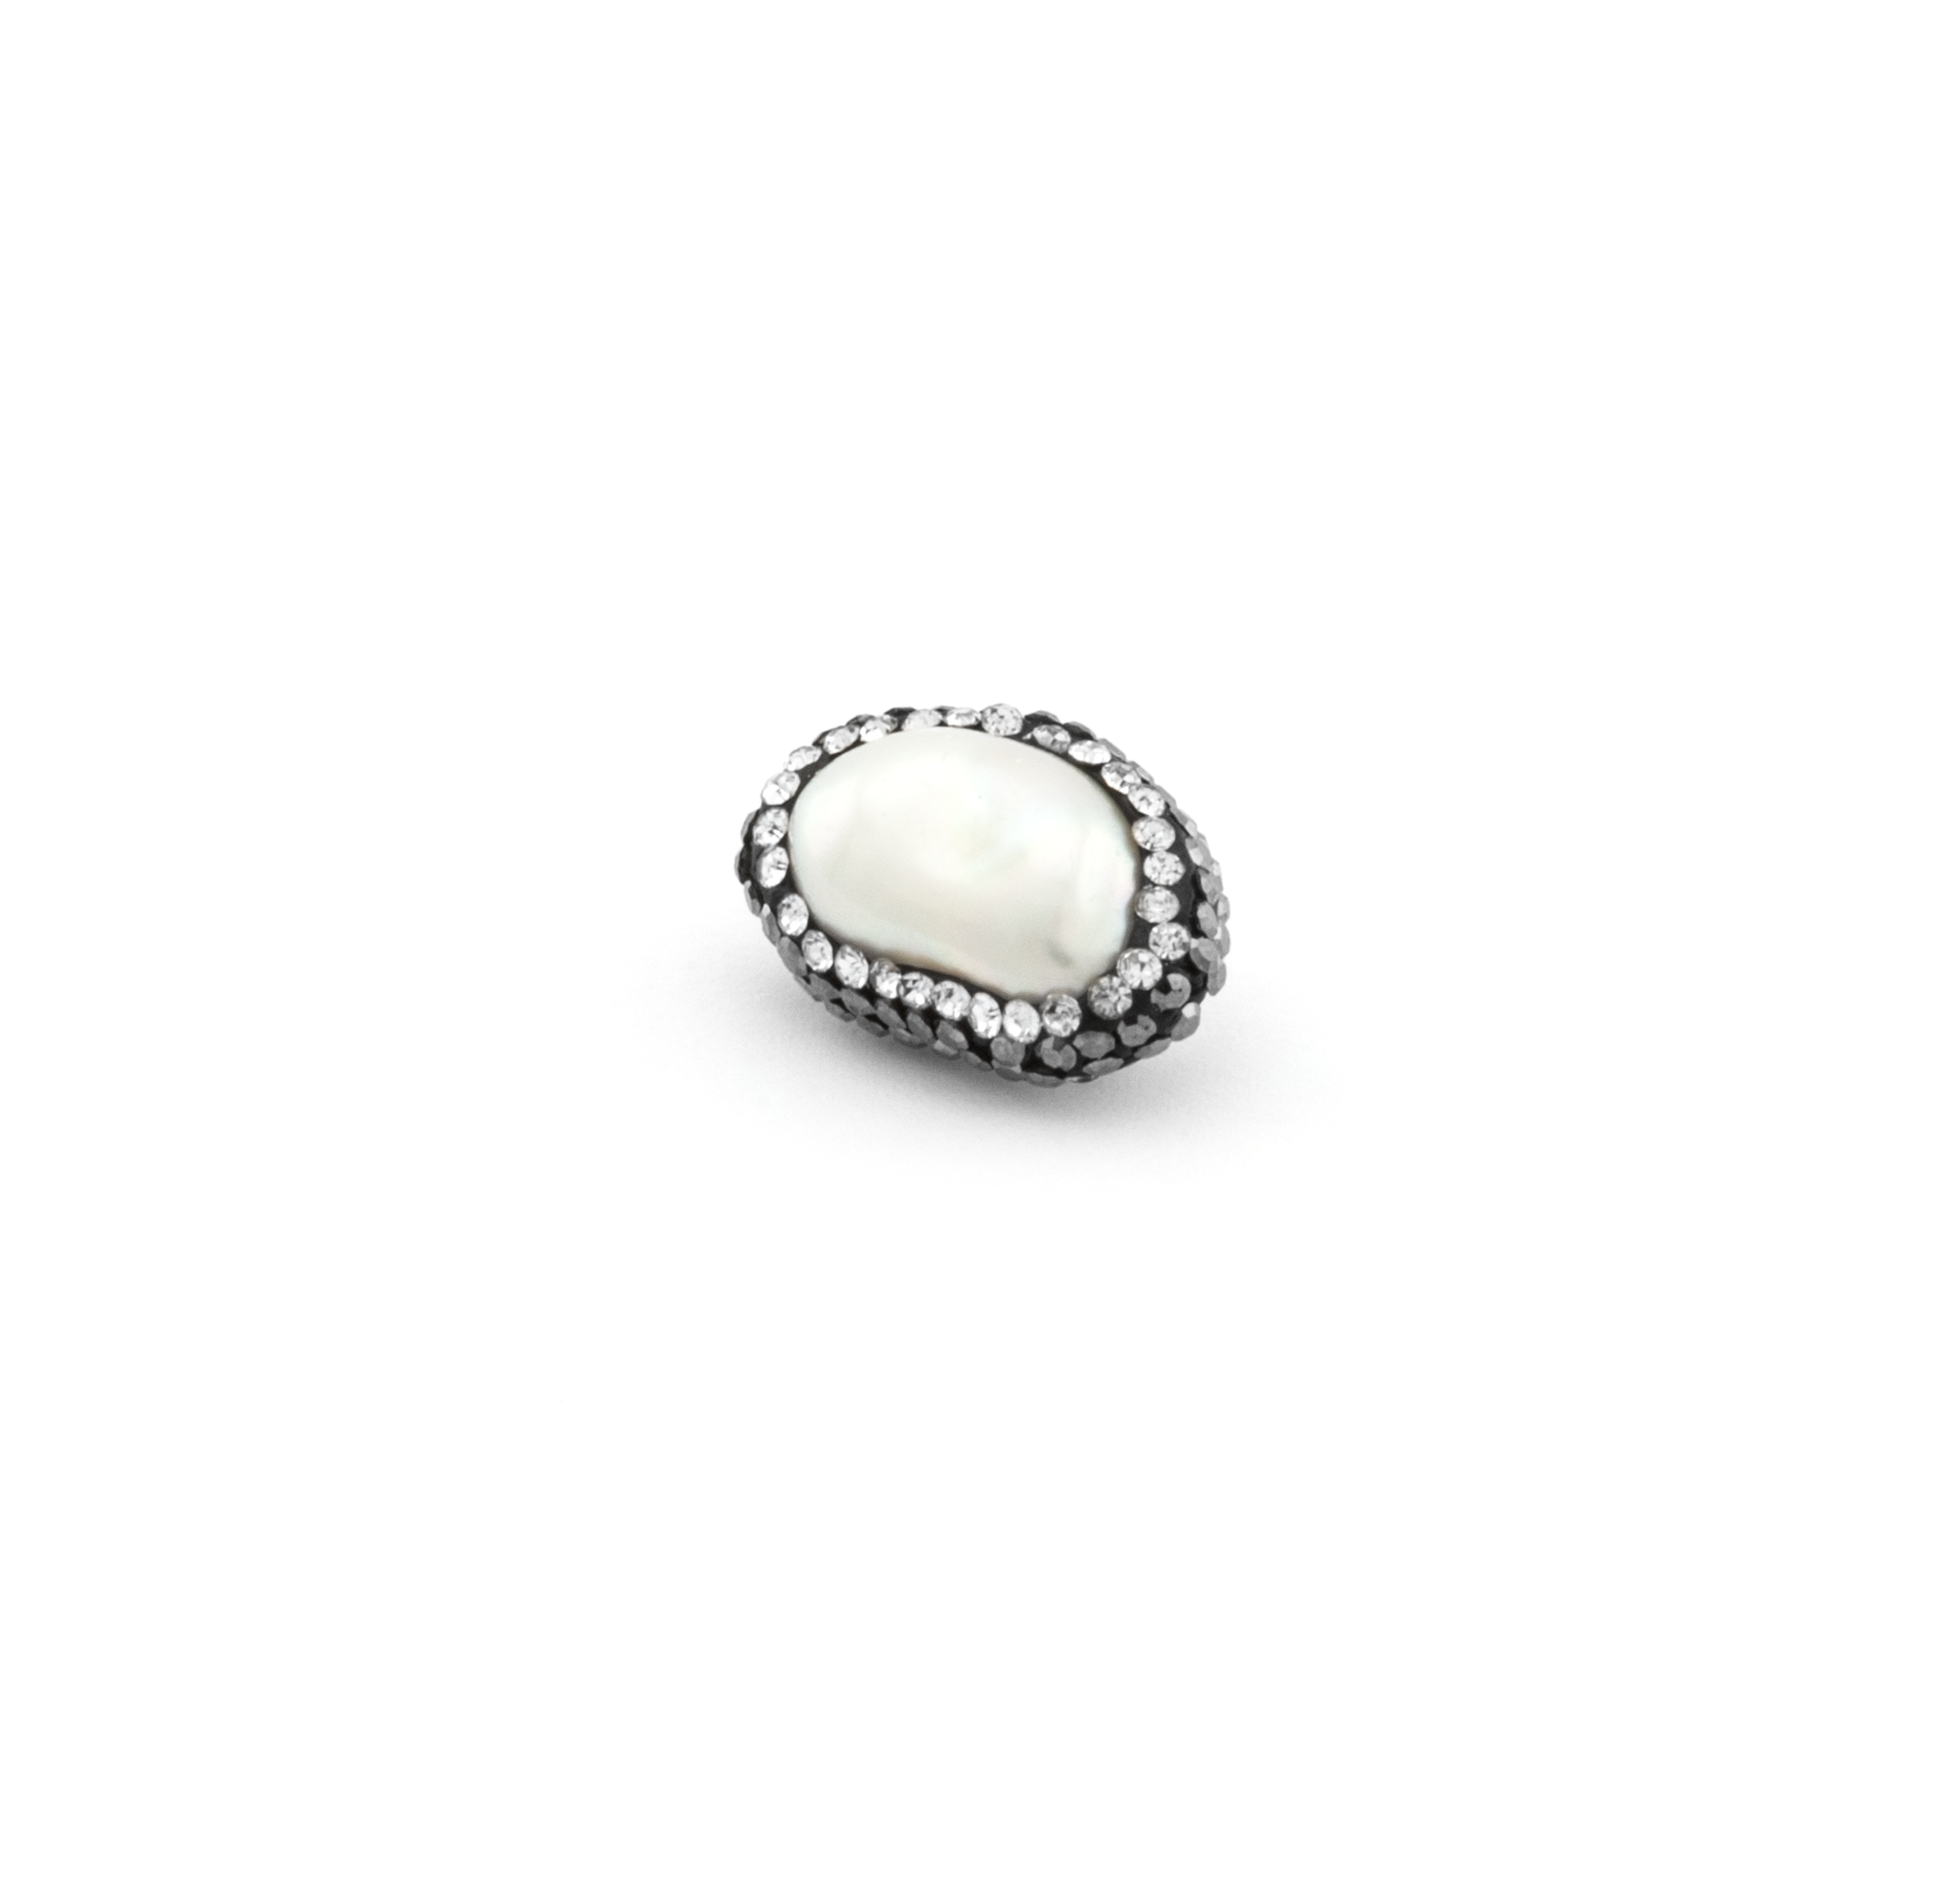 FRESH WATER PEARL WITH STRASS 18mm